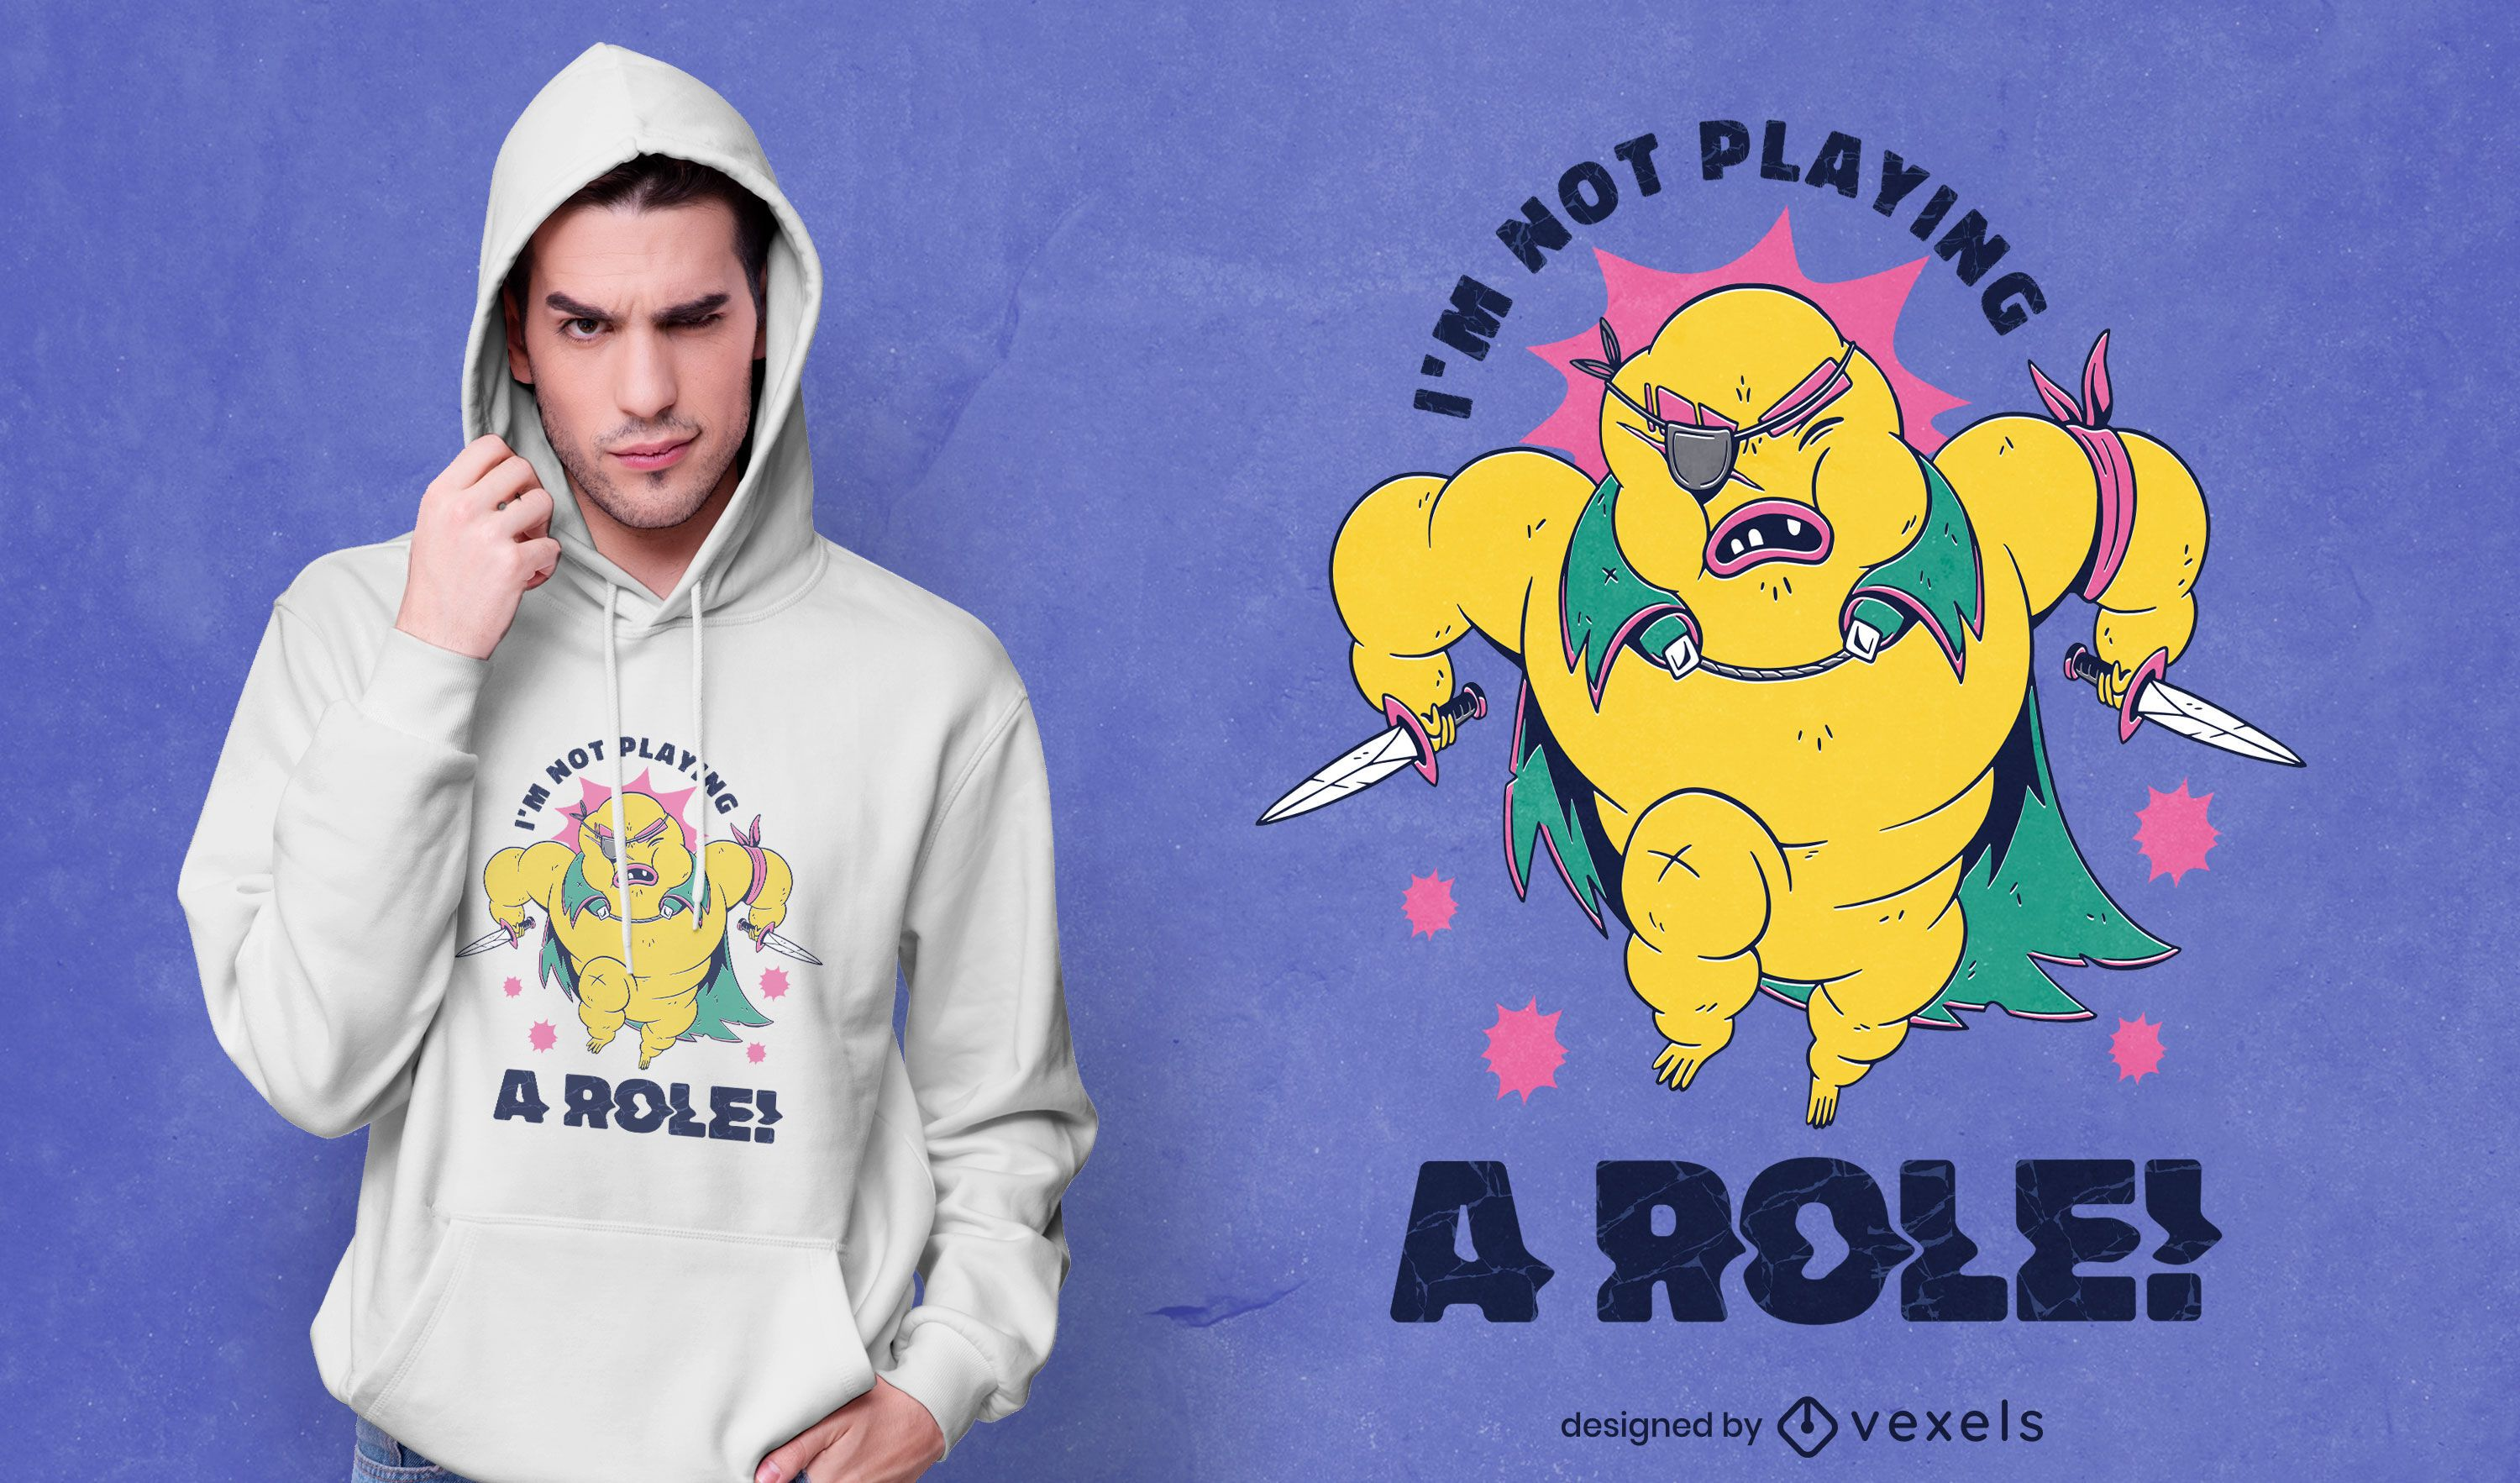 I'm not playing a role character t-shirt design